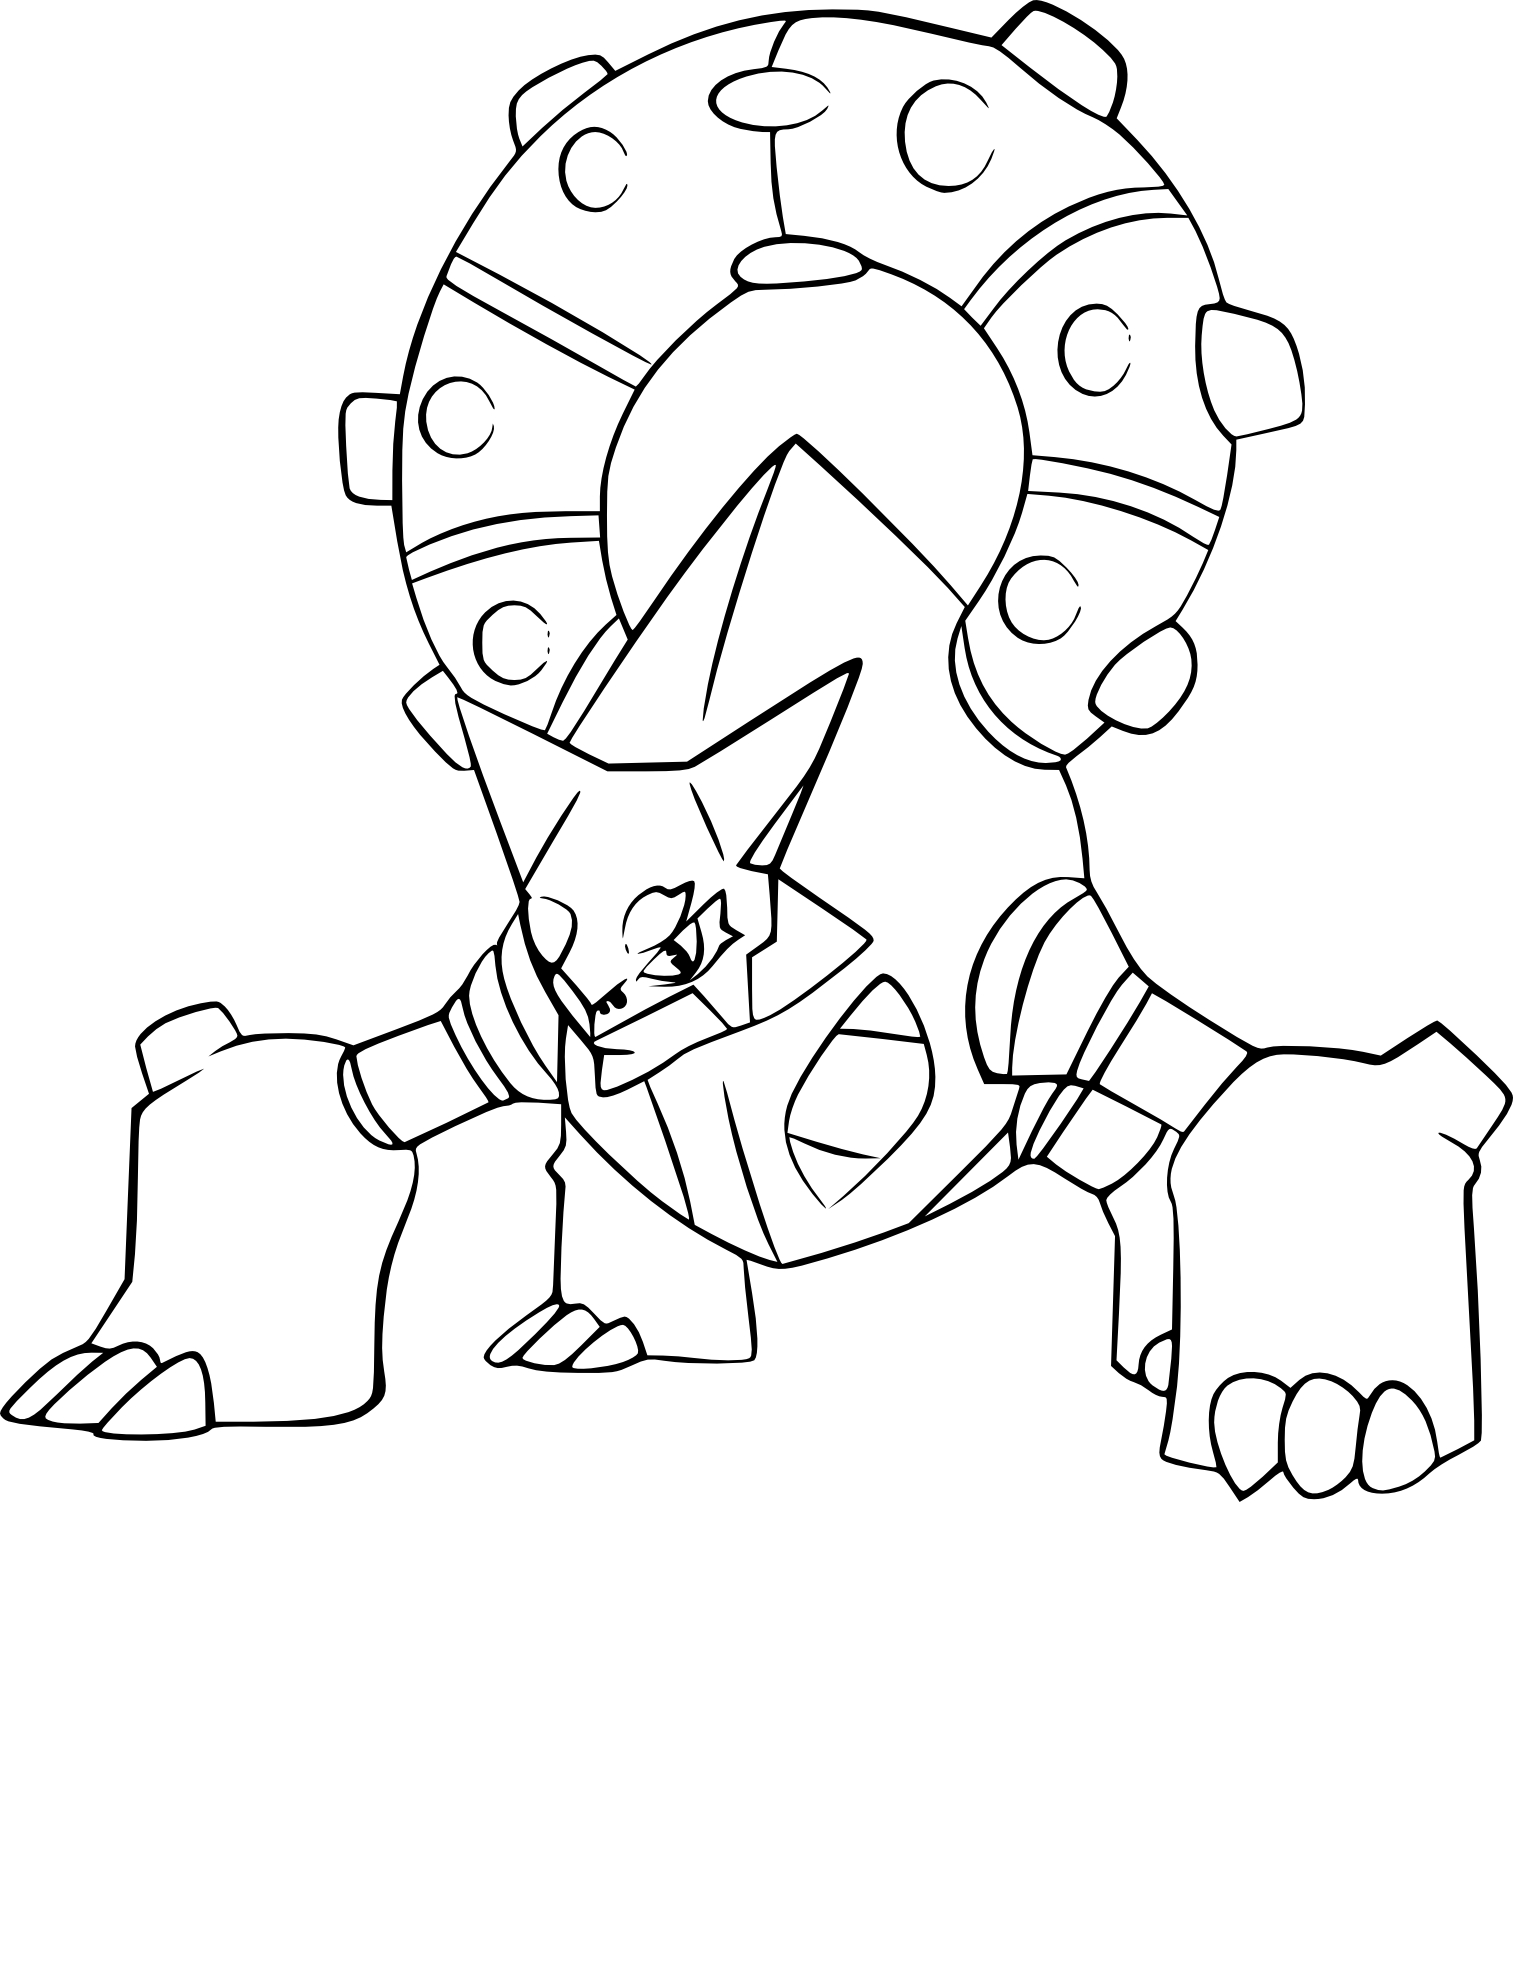 Coloriage Volcanion